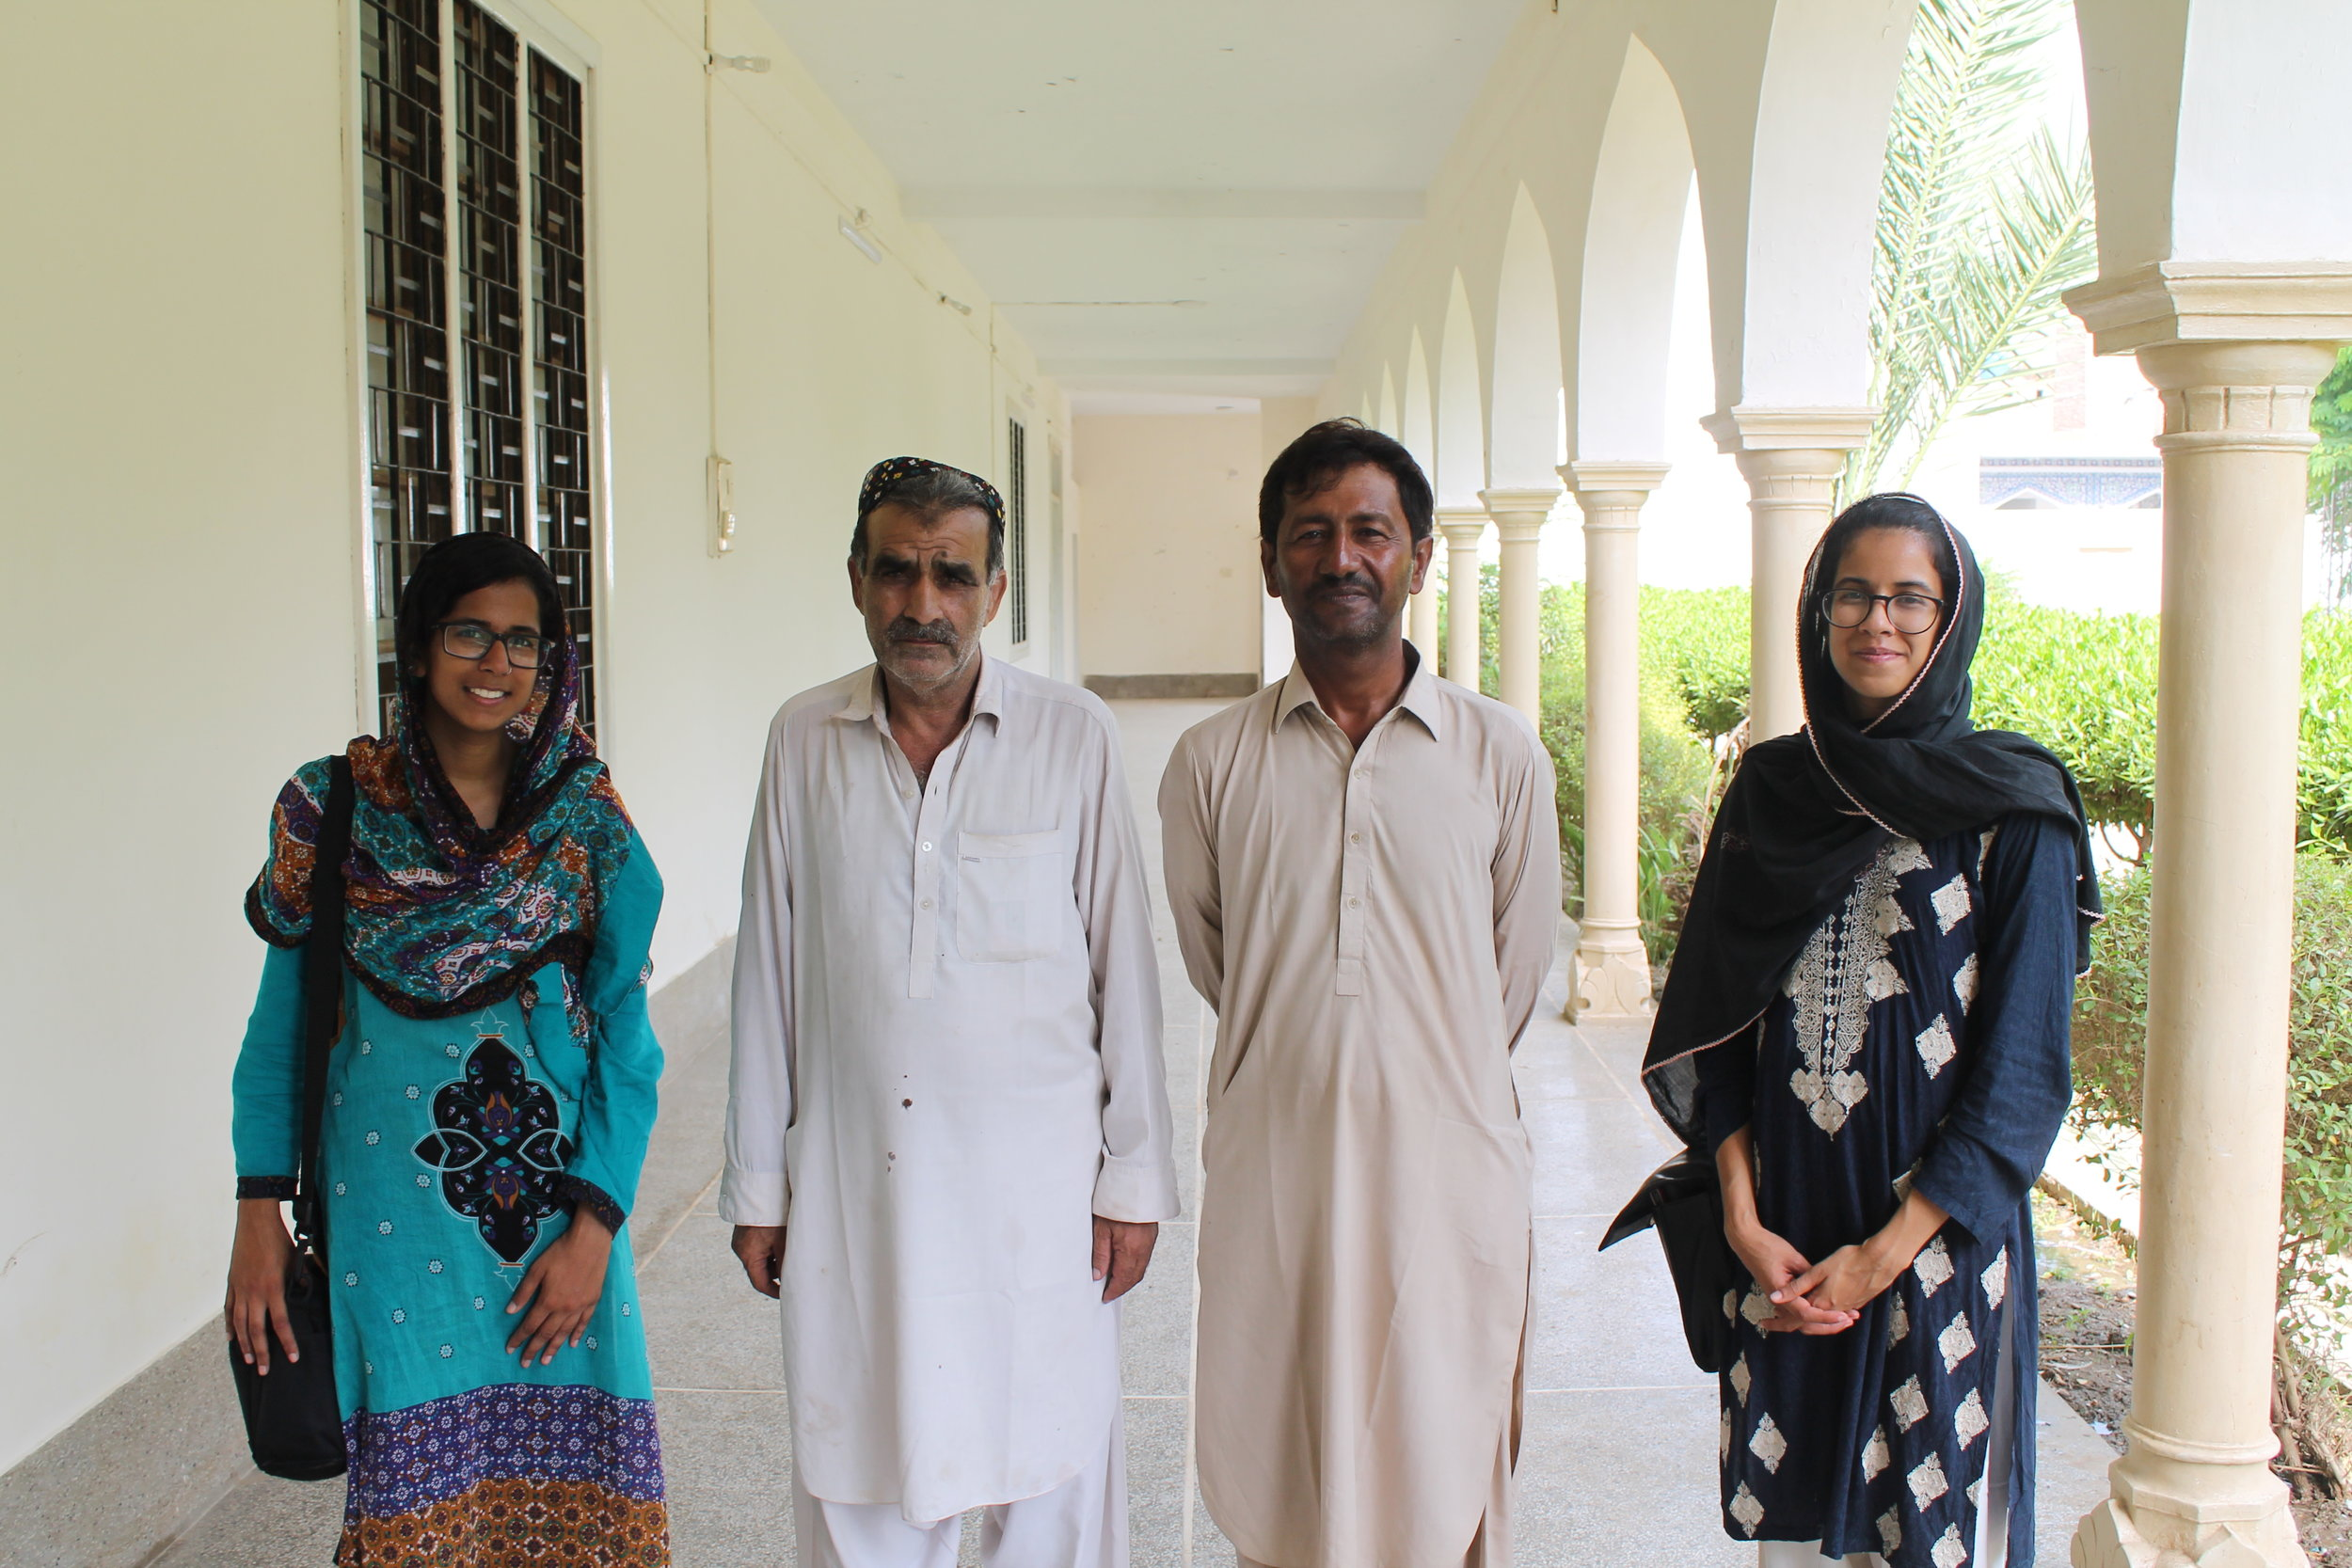 Meeting with Ismail (right) and Mohammad Kamal Kori (left) at the Bhit Shah Museum (Photo by Kayhan Qaiser)